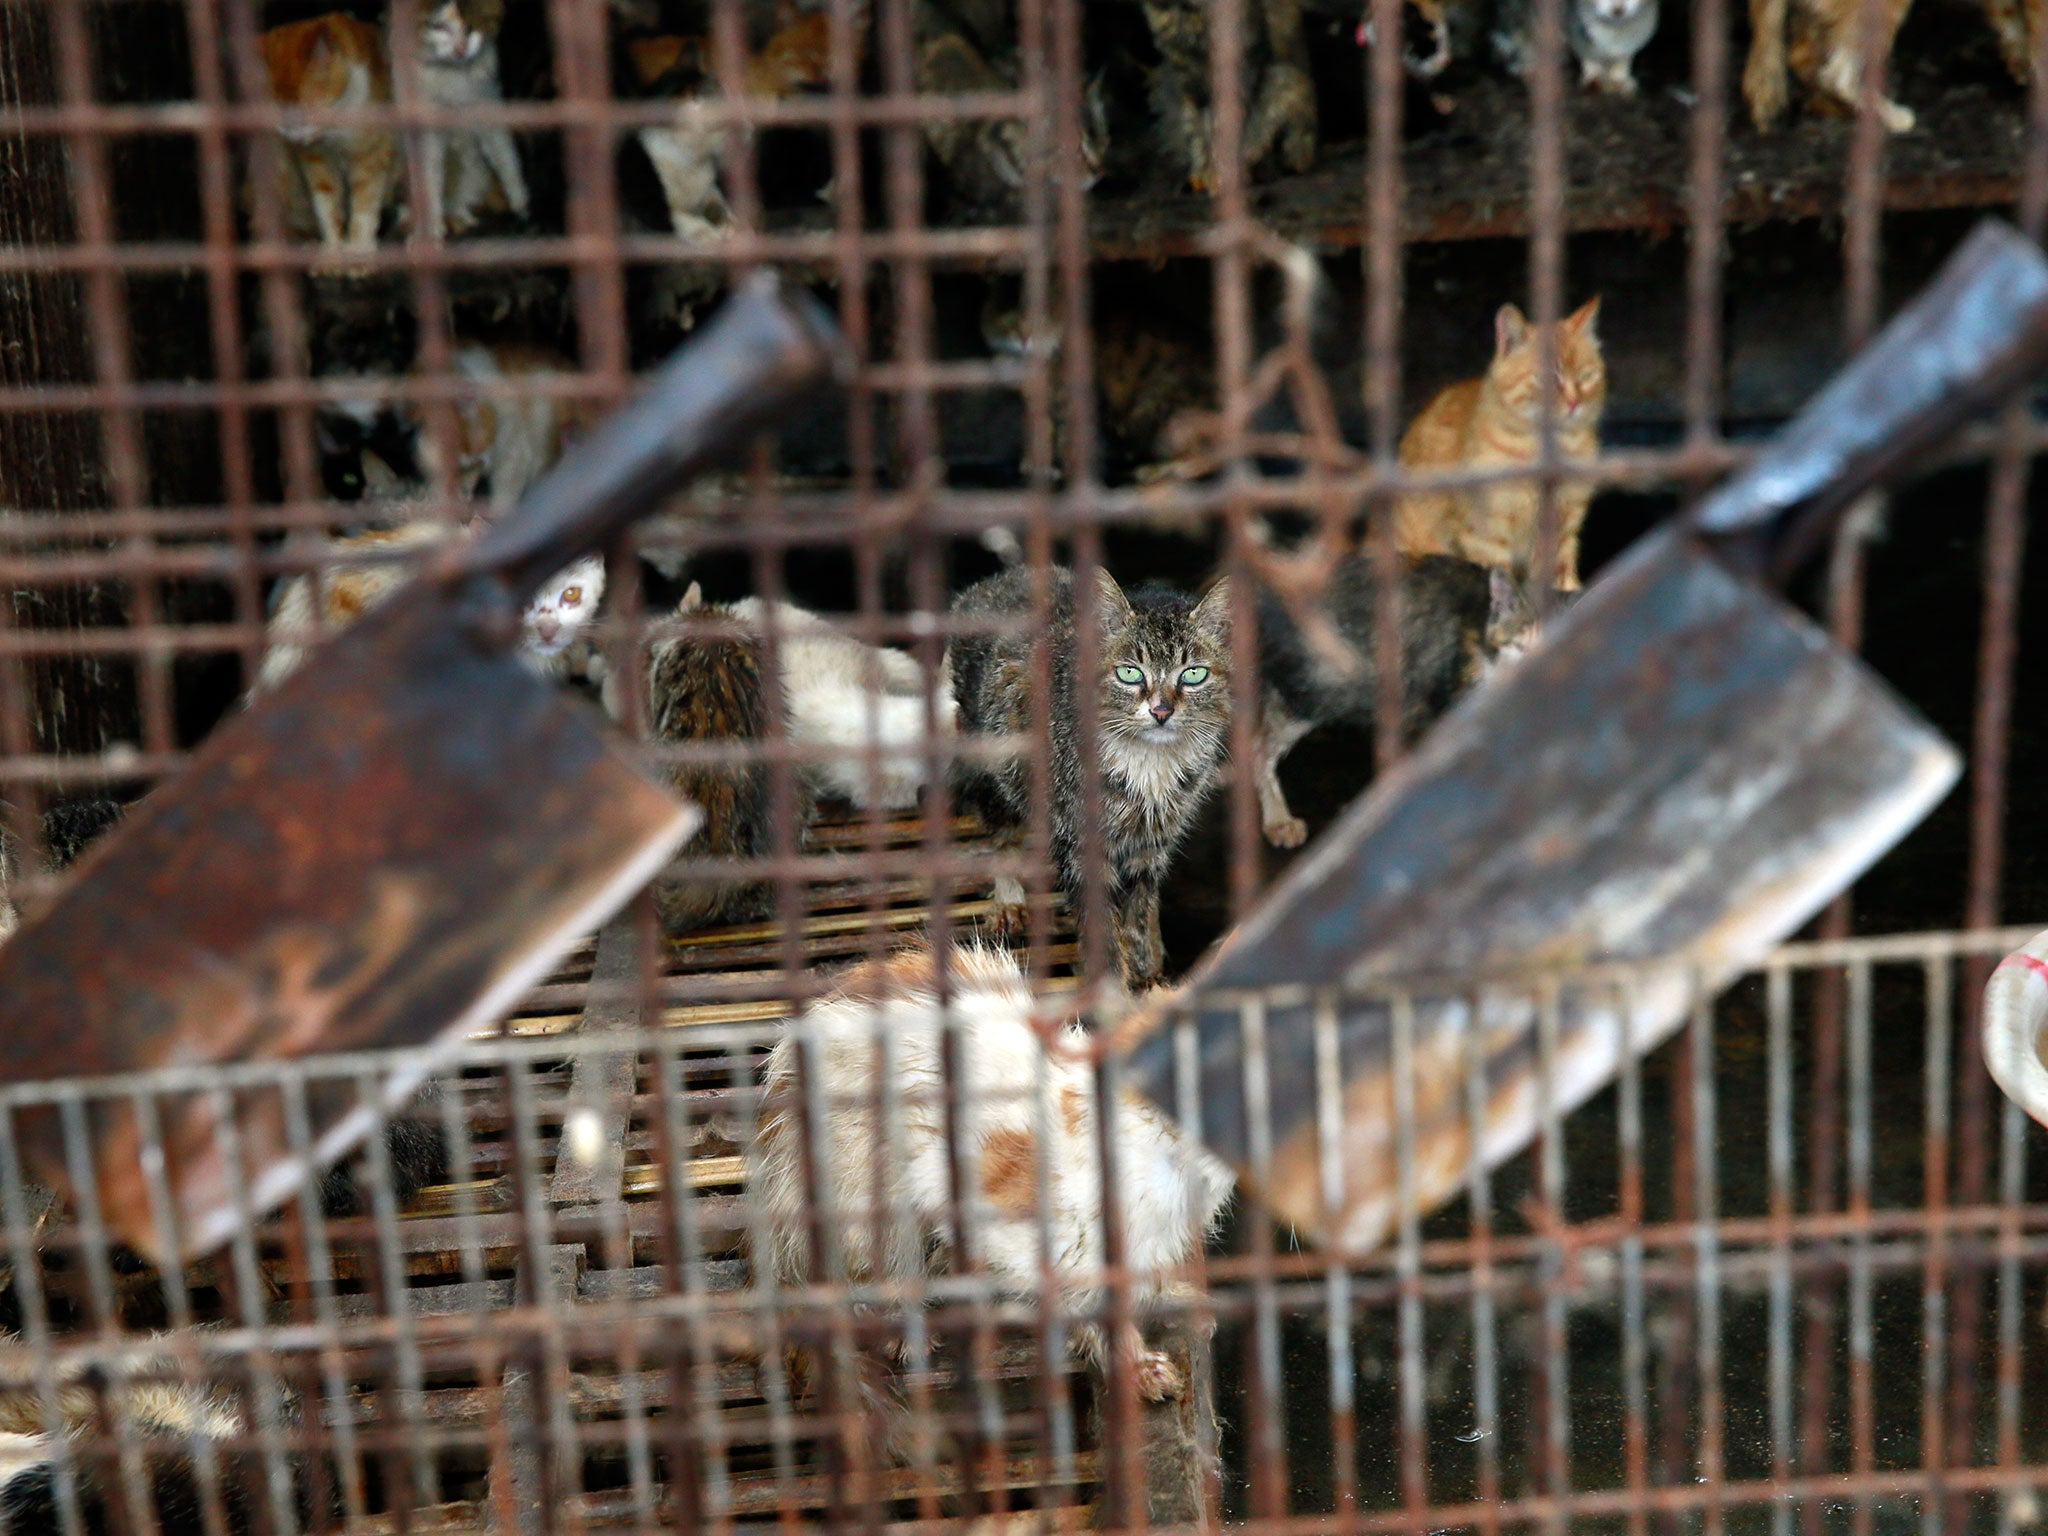 Yulin Dog Meat Festival: Dogs blow-torched alive in footage